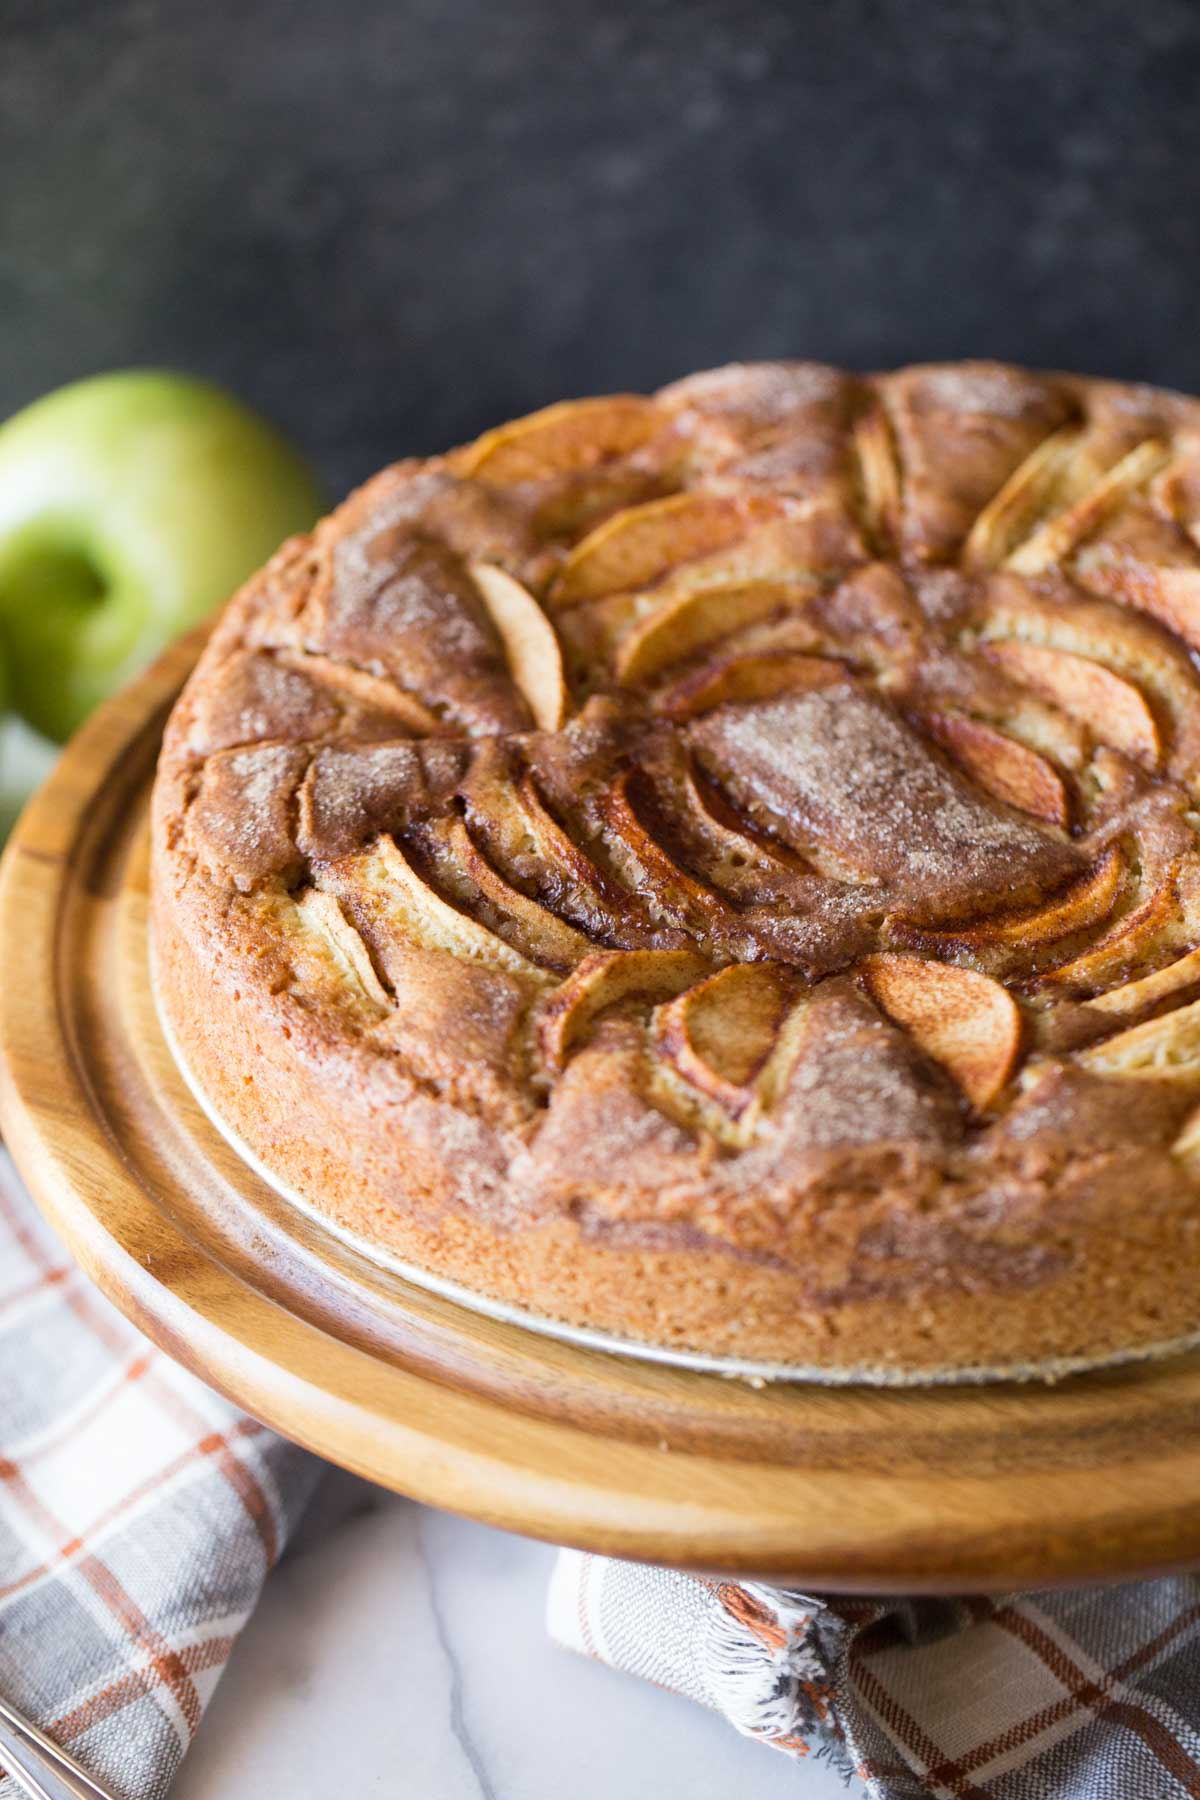 Apple Cider Cake from the front view on a wooden cake stand.